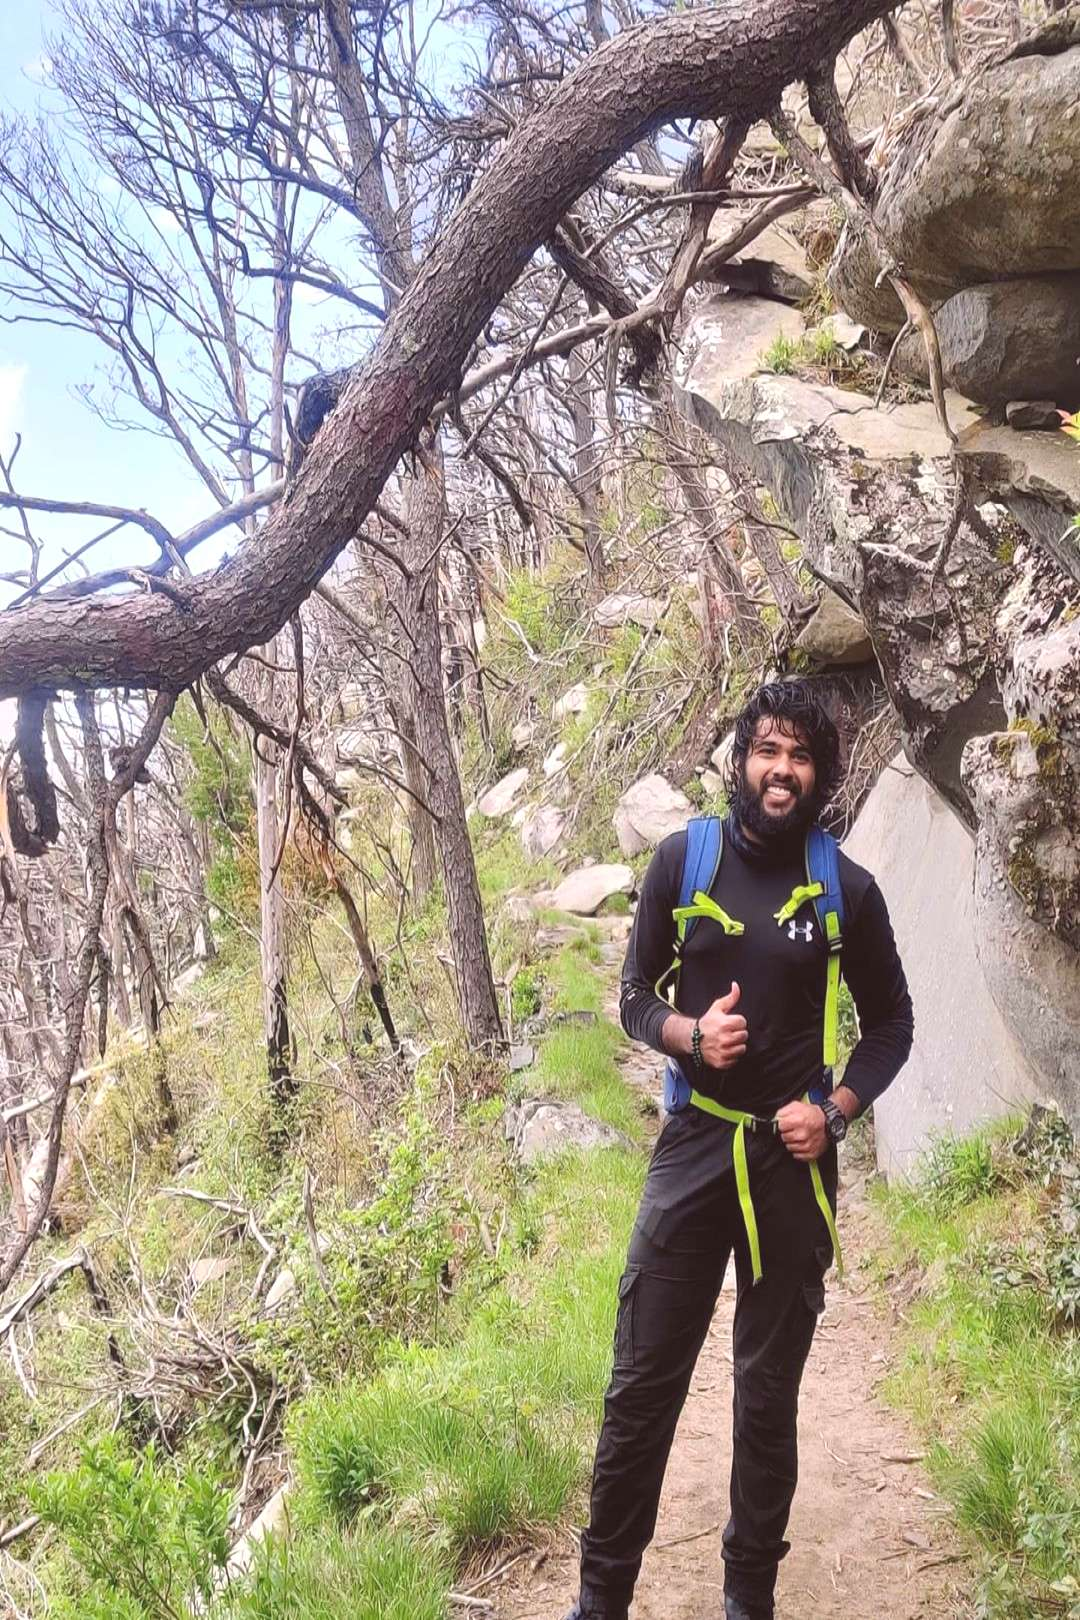 Karthik Reddy on June 01 2020 1 person standing tree outdoor and